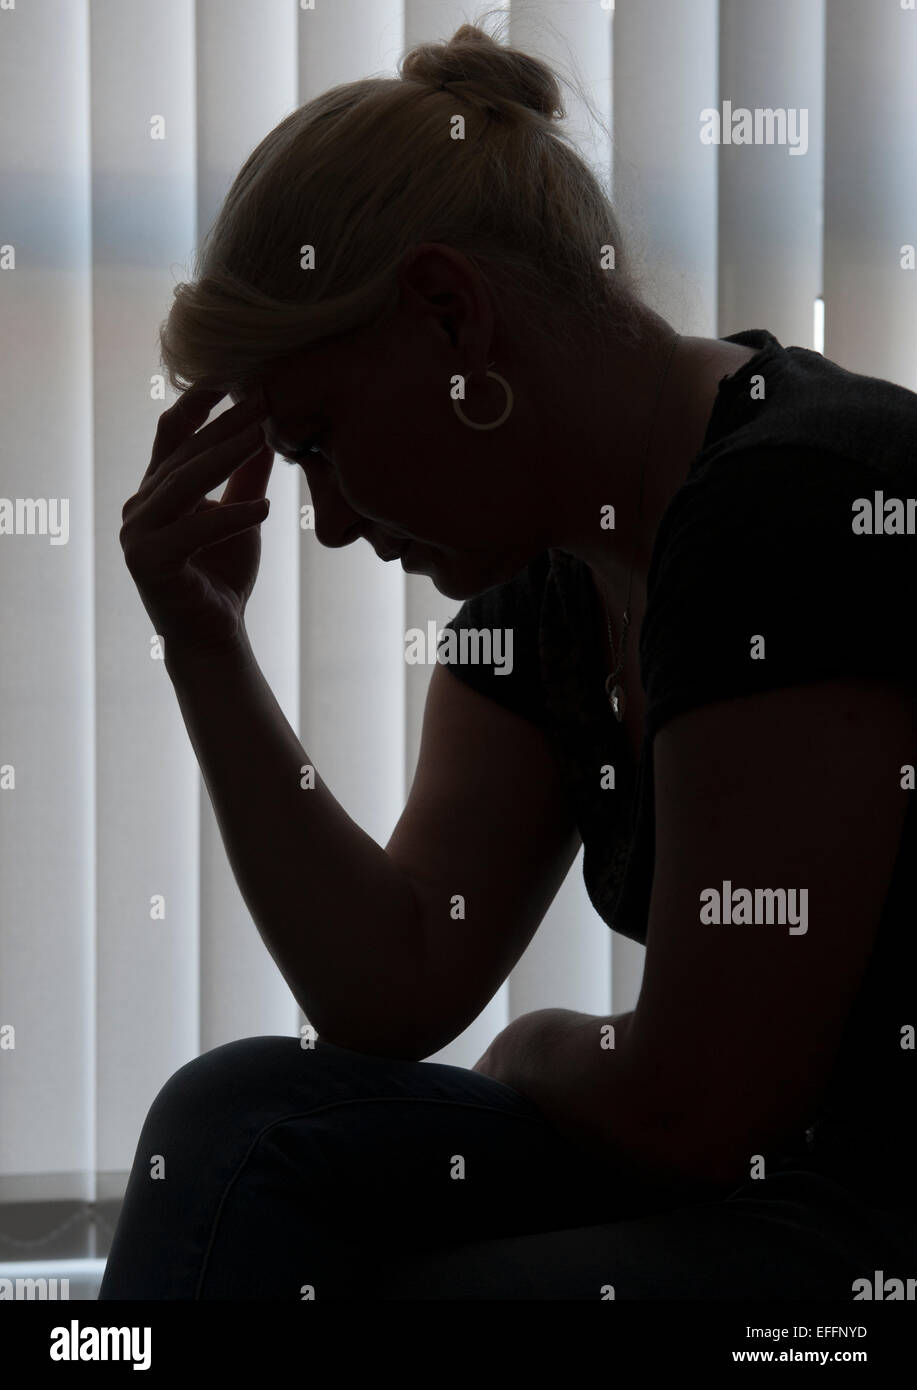 A middle aged woman silhouetted against window blinds leans over with her head in her hands. - Stock Image